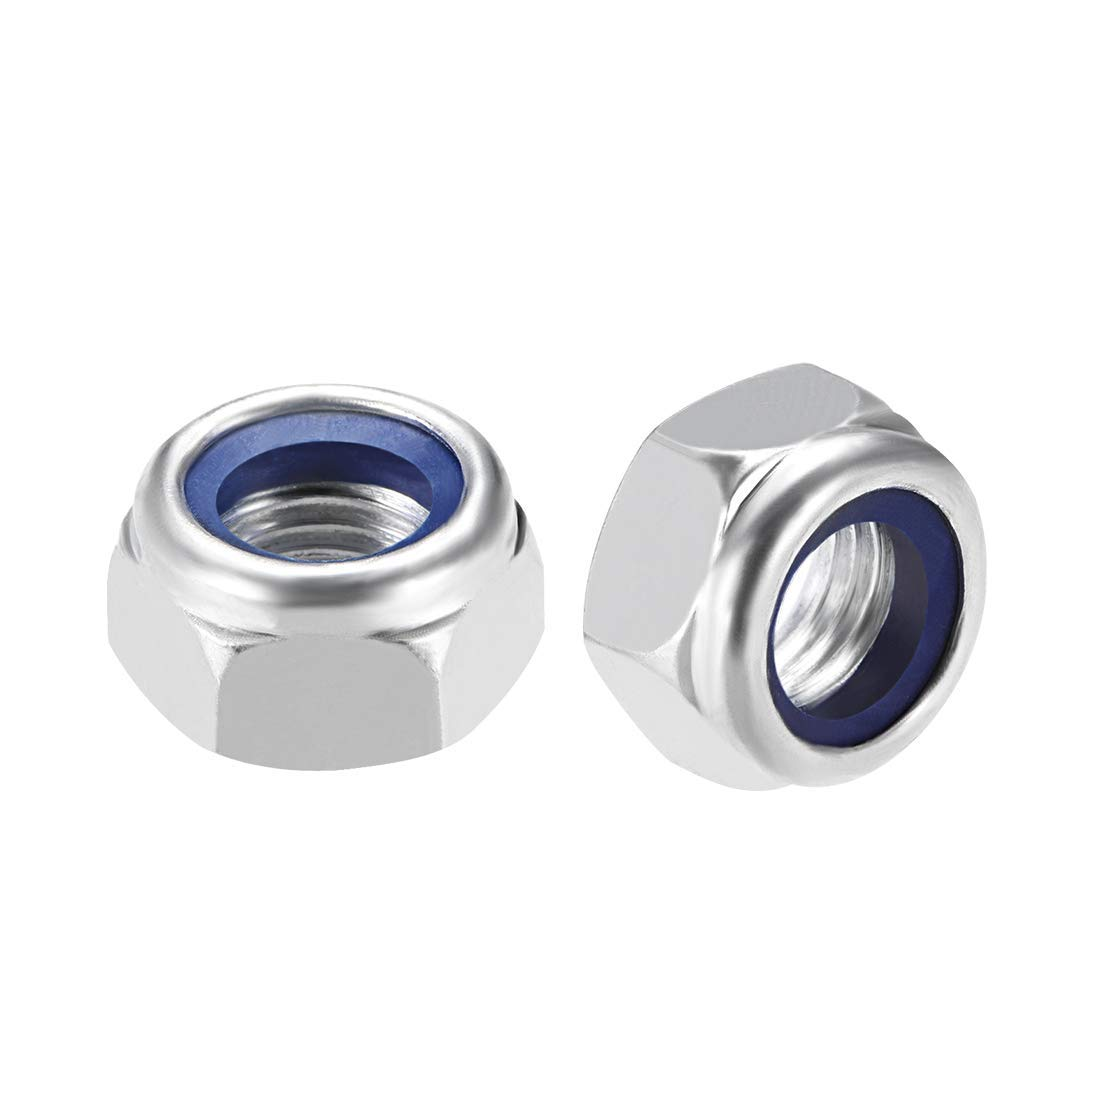 Pack of 5 Galvanized White Carbon Steel Hexagonal Safety Nuts with M16 x 2 mm Nylon Insert